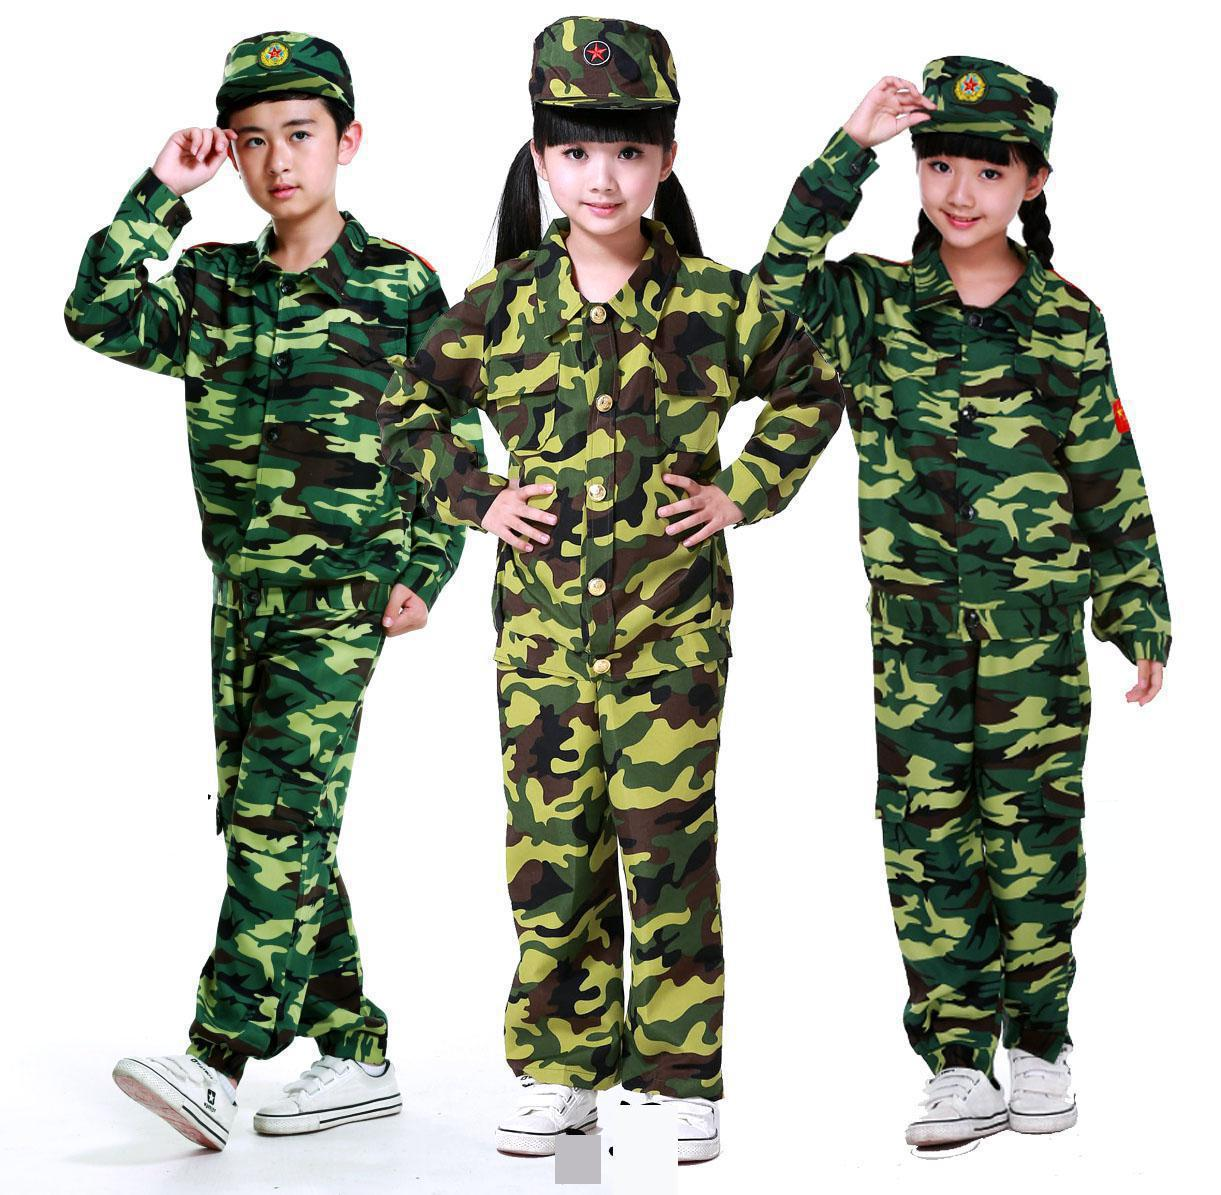 2019 Kids Battle Soldier Costume Boys Girls Military Uniform Cosplay Carnaval Costume For Kids Camouflage Costume For Childrens